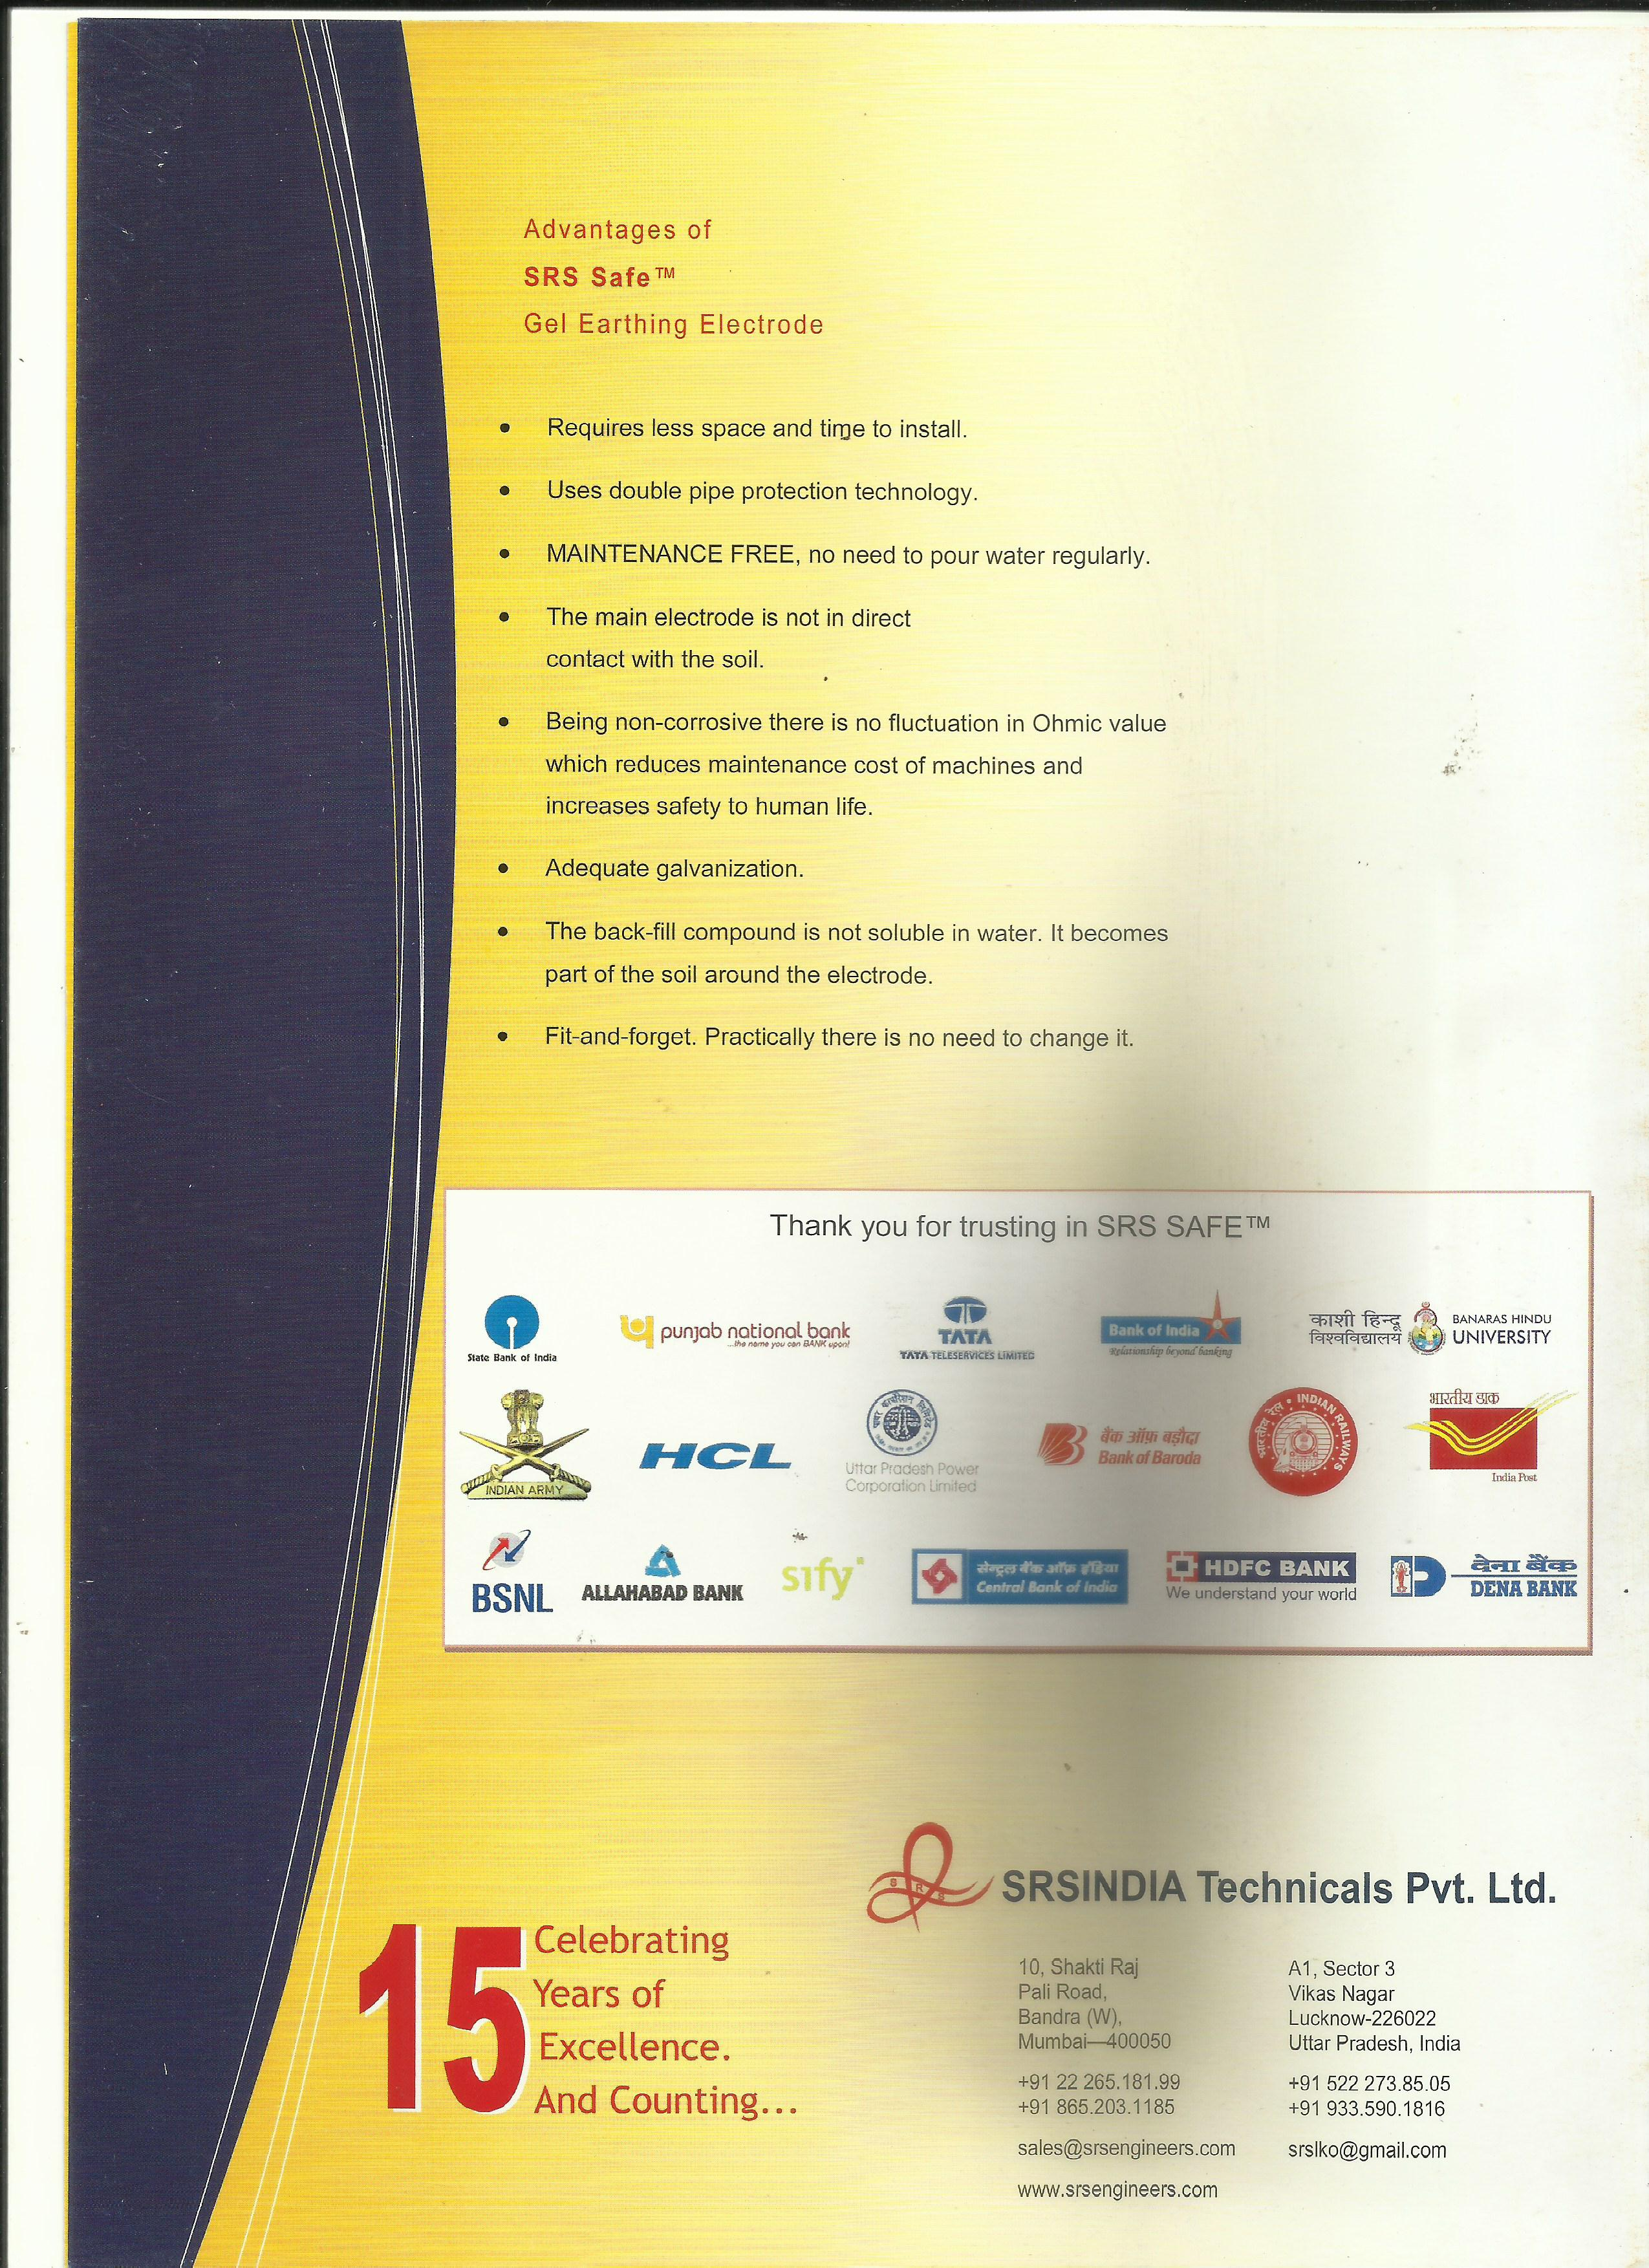 SRS INDIA Technicals Pvt. Ltd.